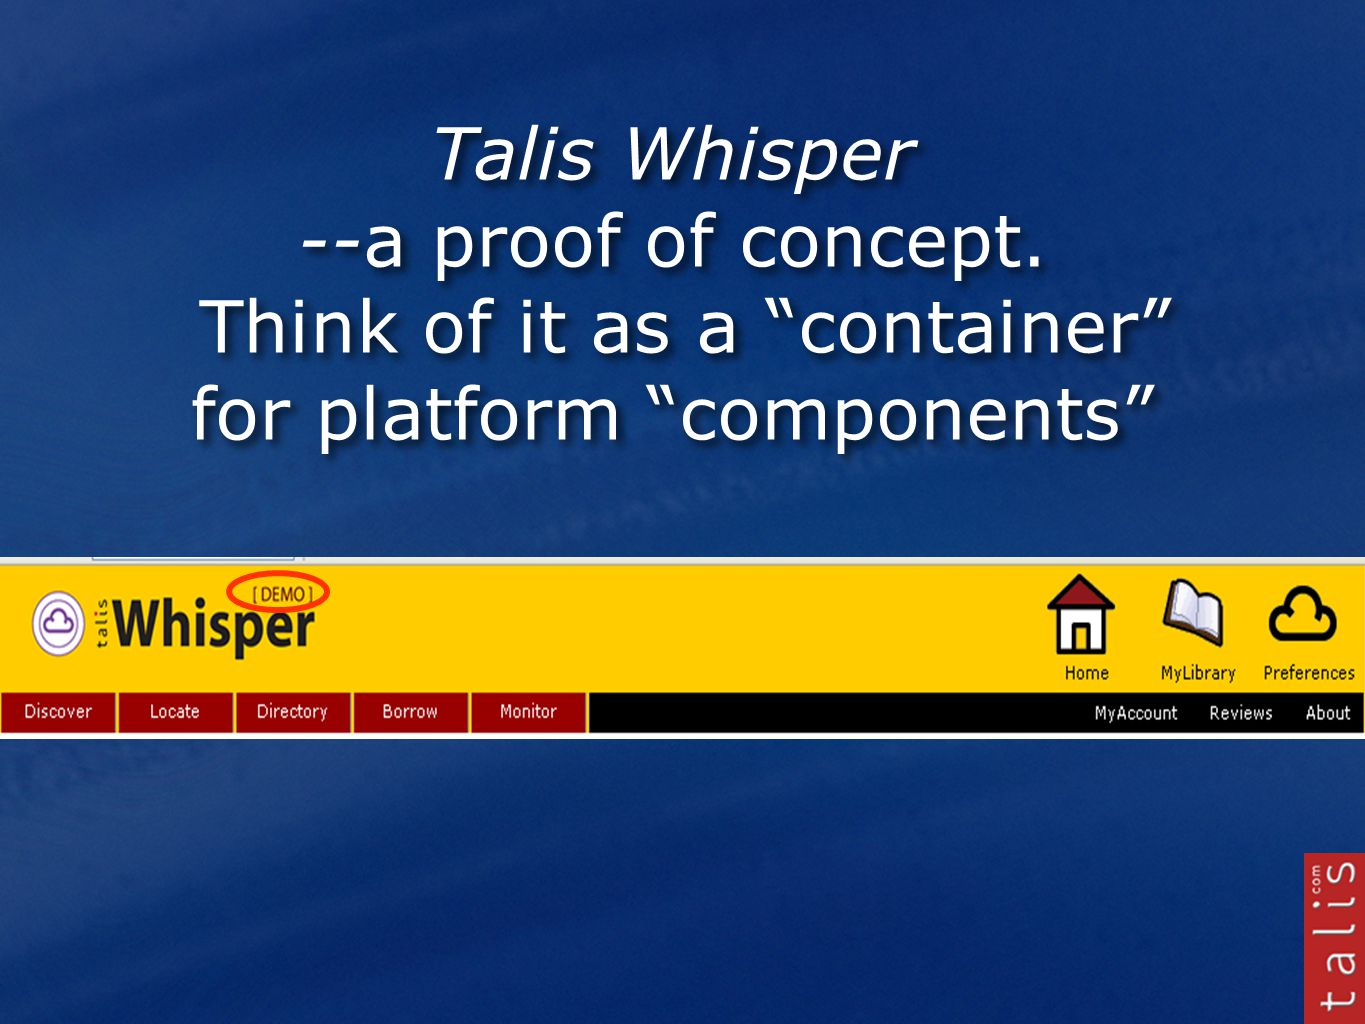 Talis Whisper --a proof of concept. Think of it as a container for platform components